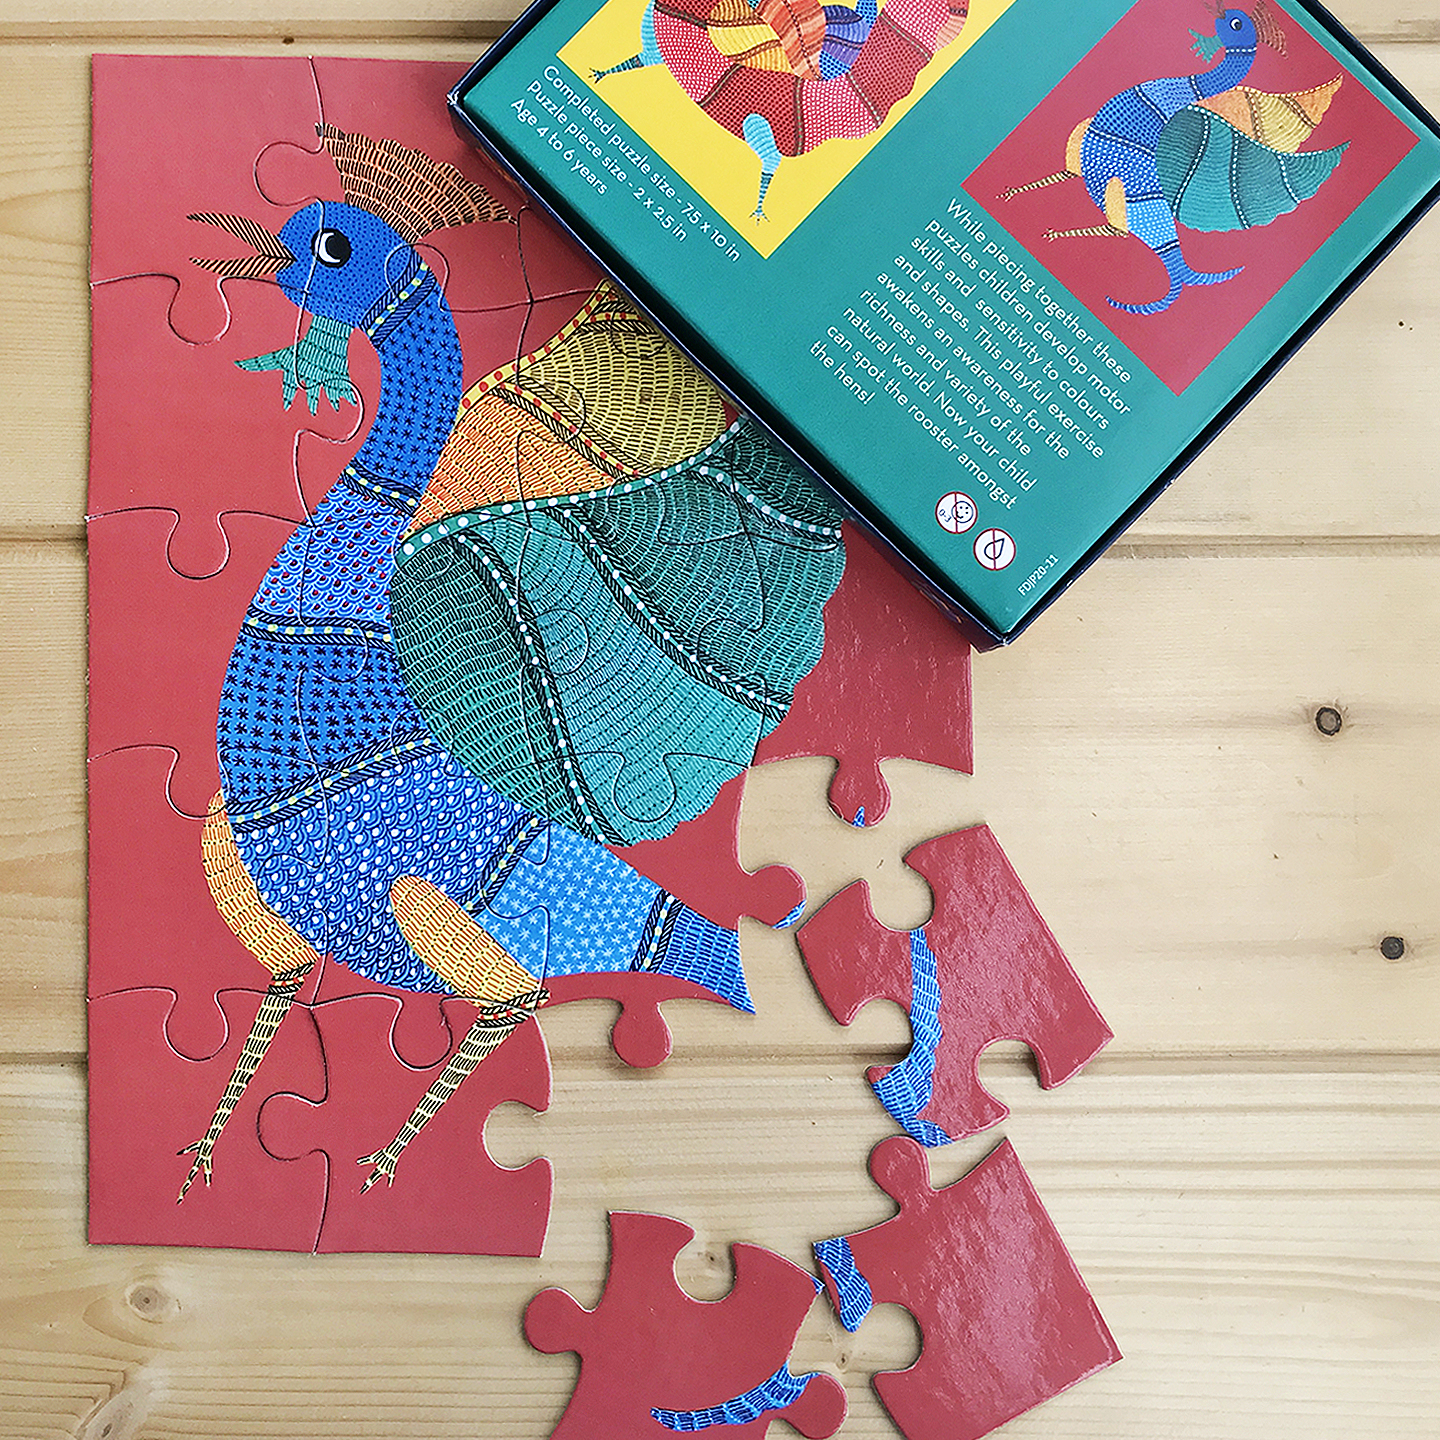 FroggMag - Jigsaw Puzzles - 20 pcs - Gond Art - Rooster and Hens